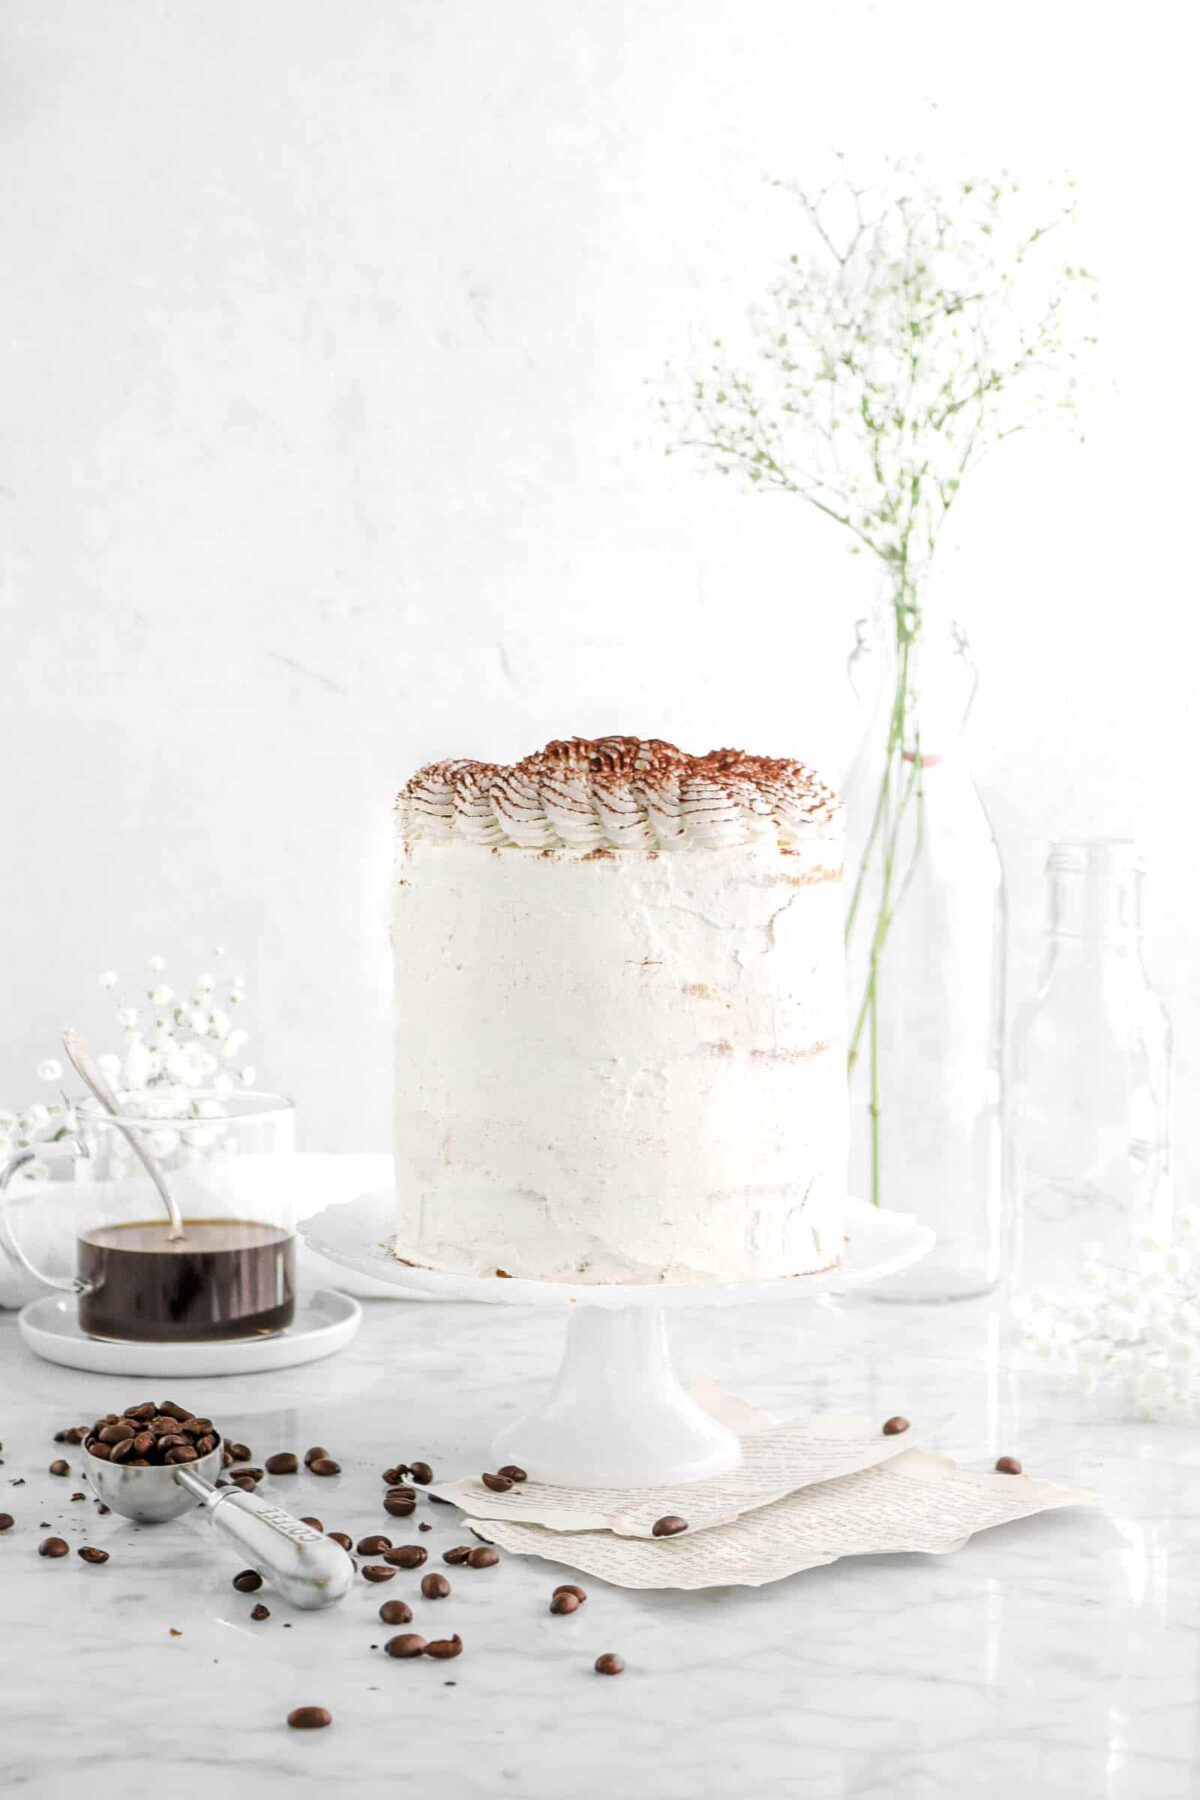 Tiramisu layer cake with coffee beans, flowers, and cup of coffee